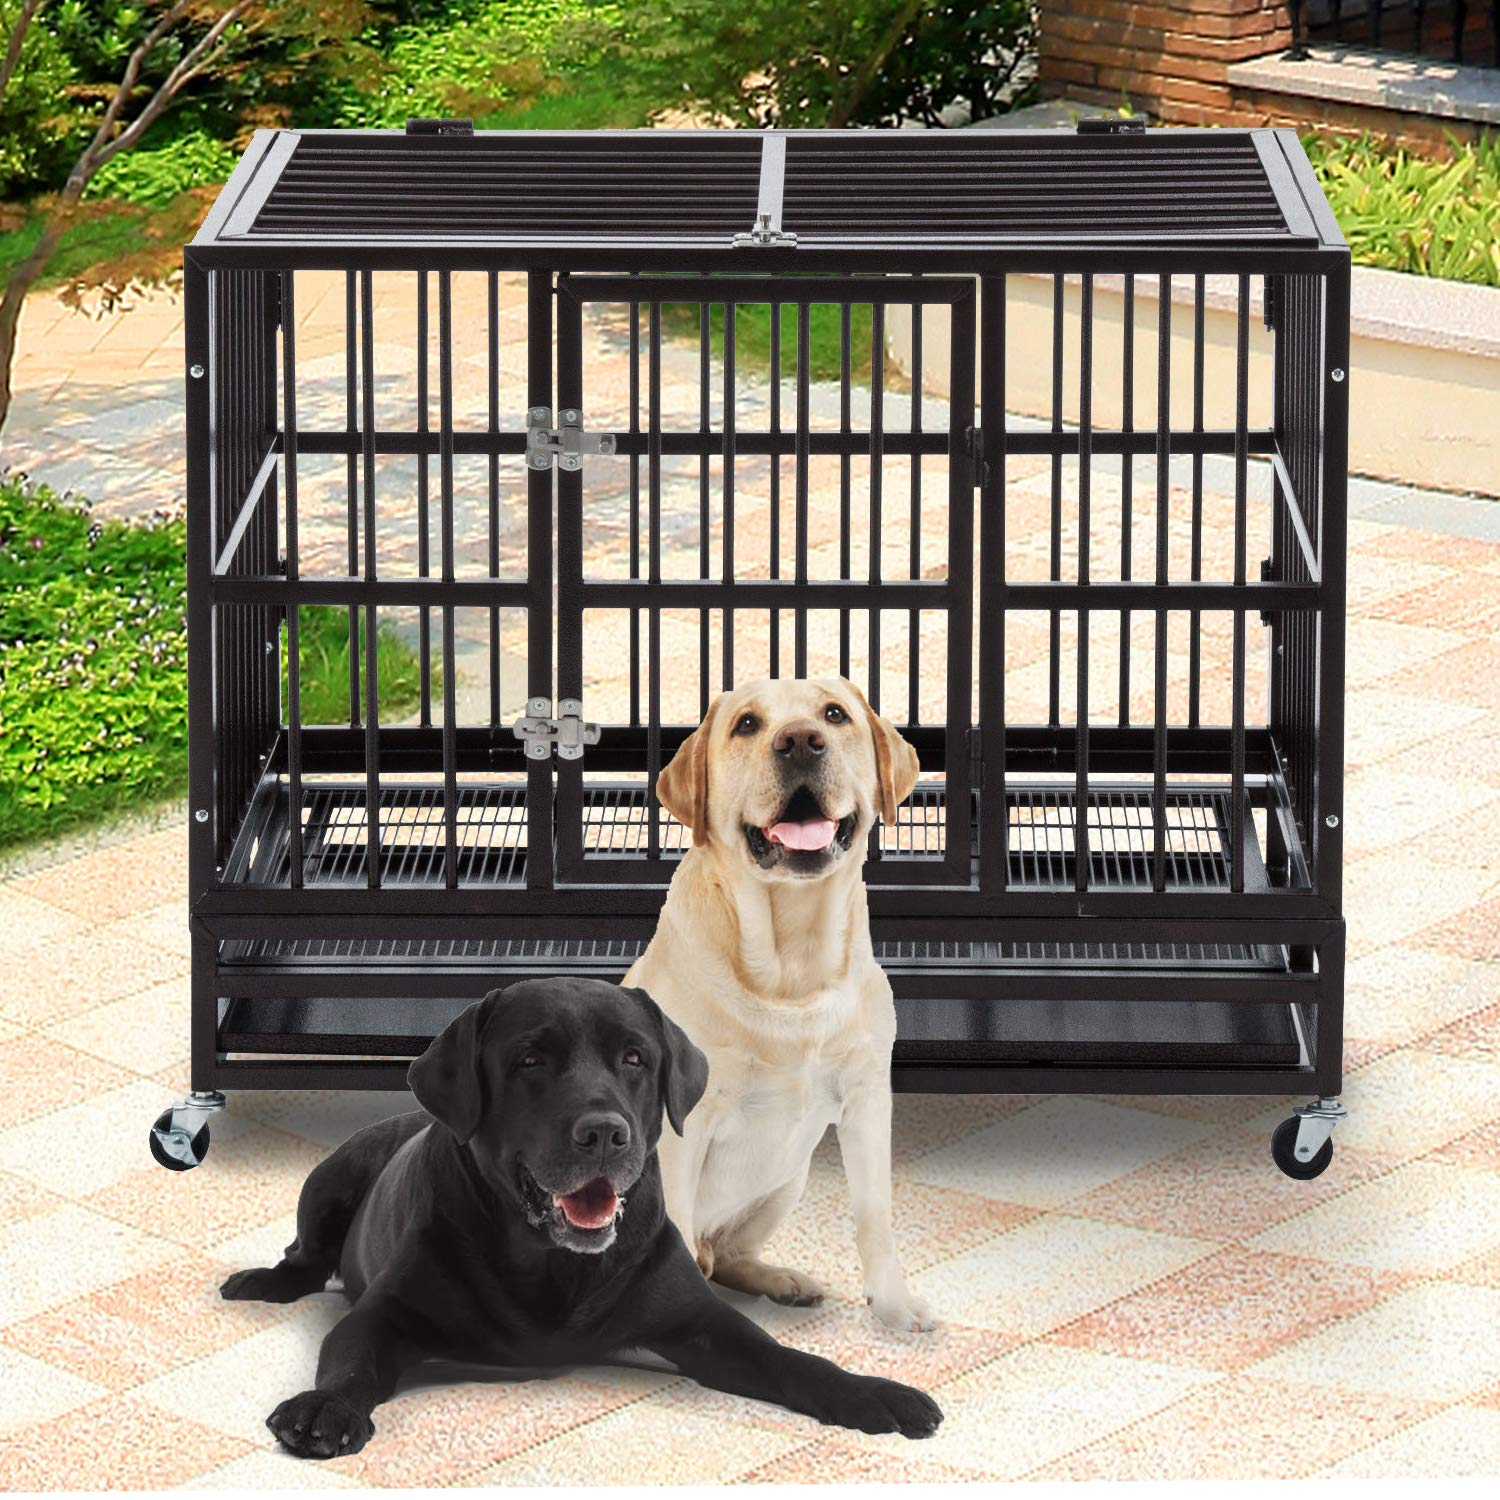 DOIT Heavy Duty Dog Cage Strong Metal Kennel XL Large Animal Crate Pet Tray